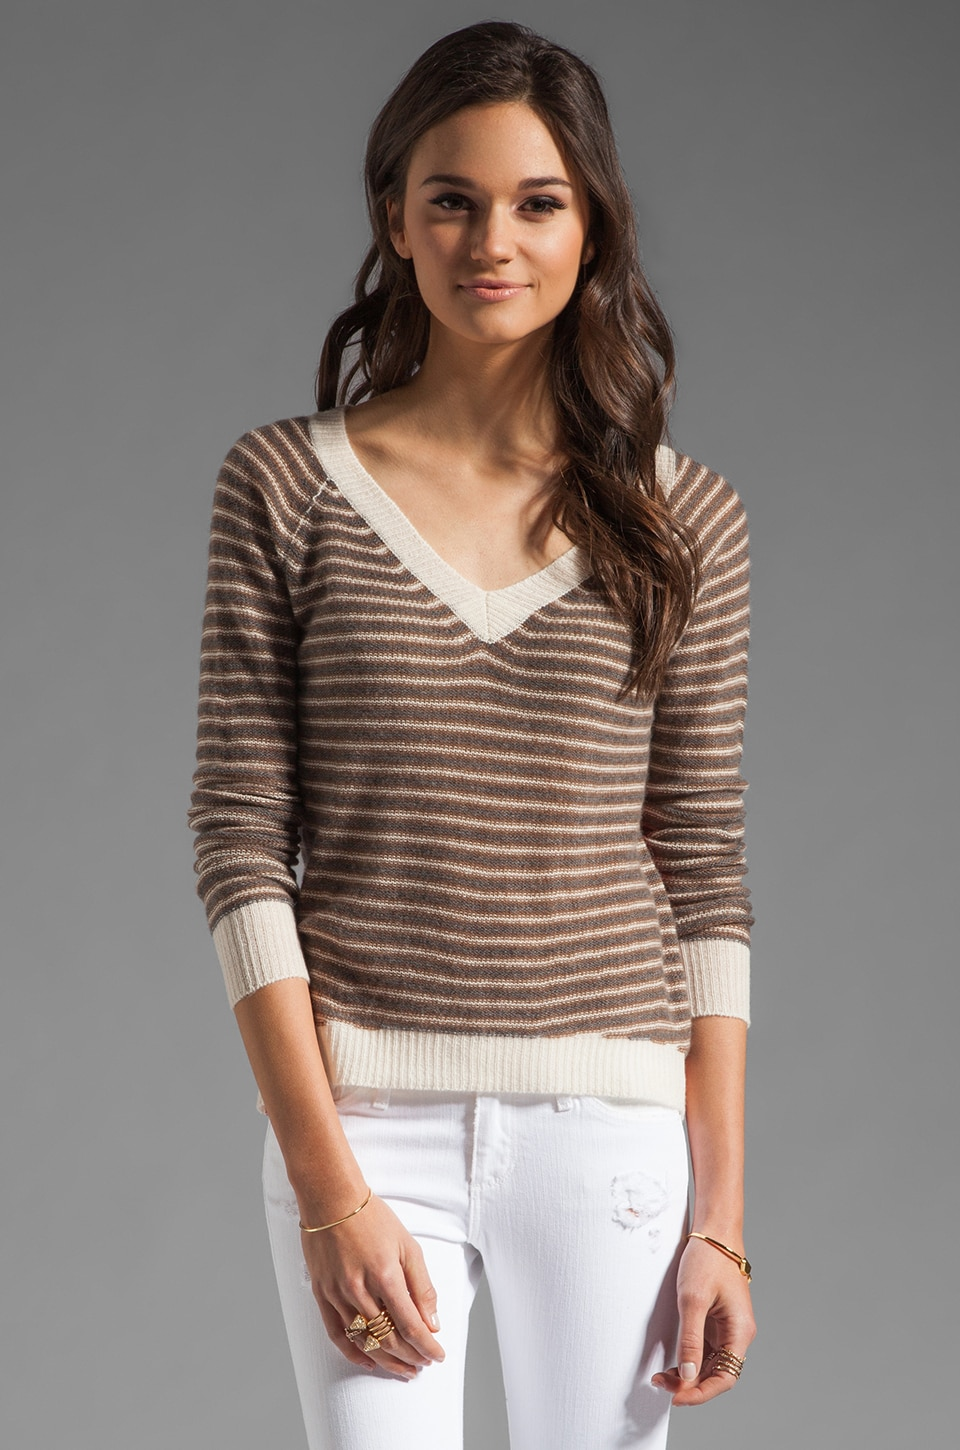 Enza Costa Cashmere V Neck in Stripe/Colorblock